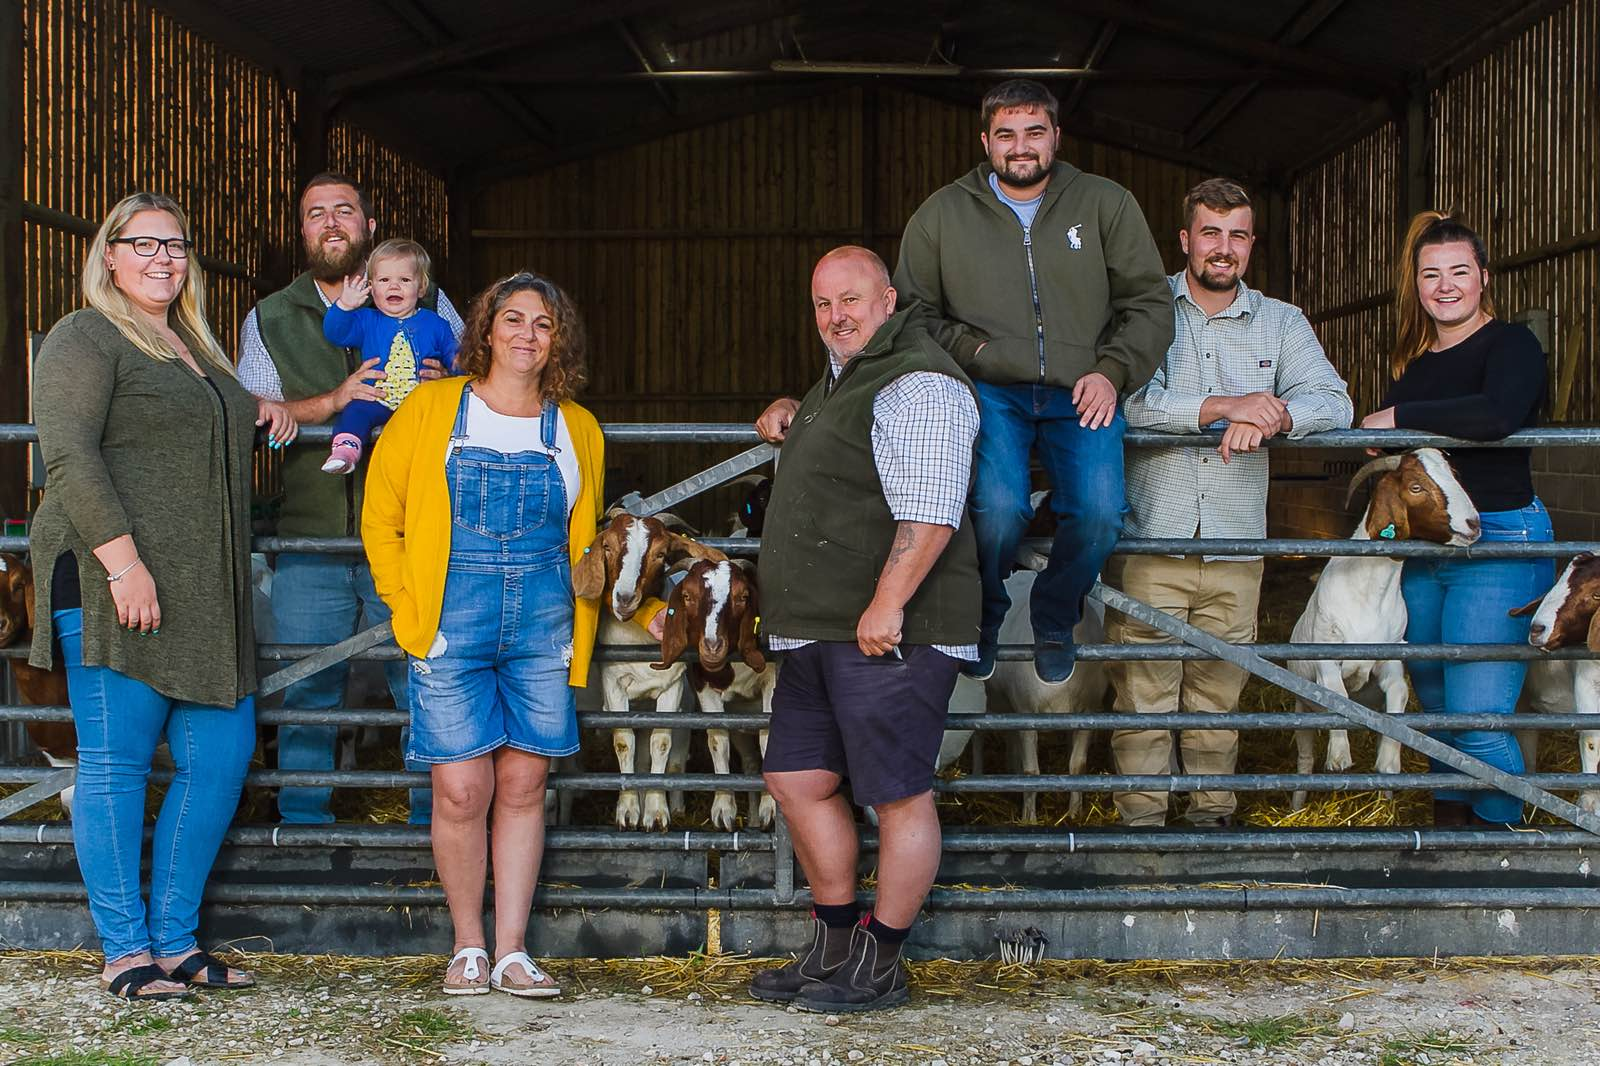 The Family at New Barn Farm Dorset with Goats in the background